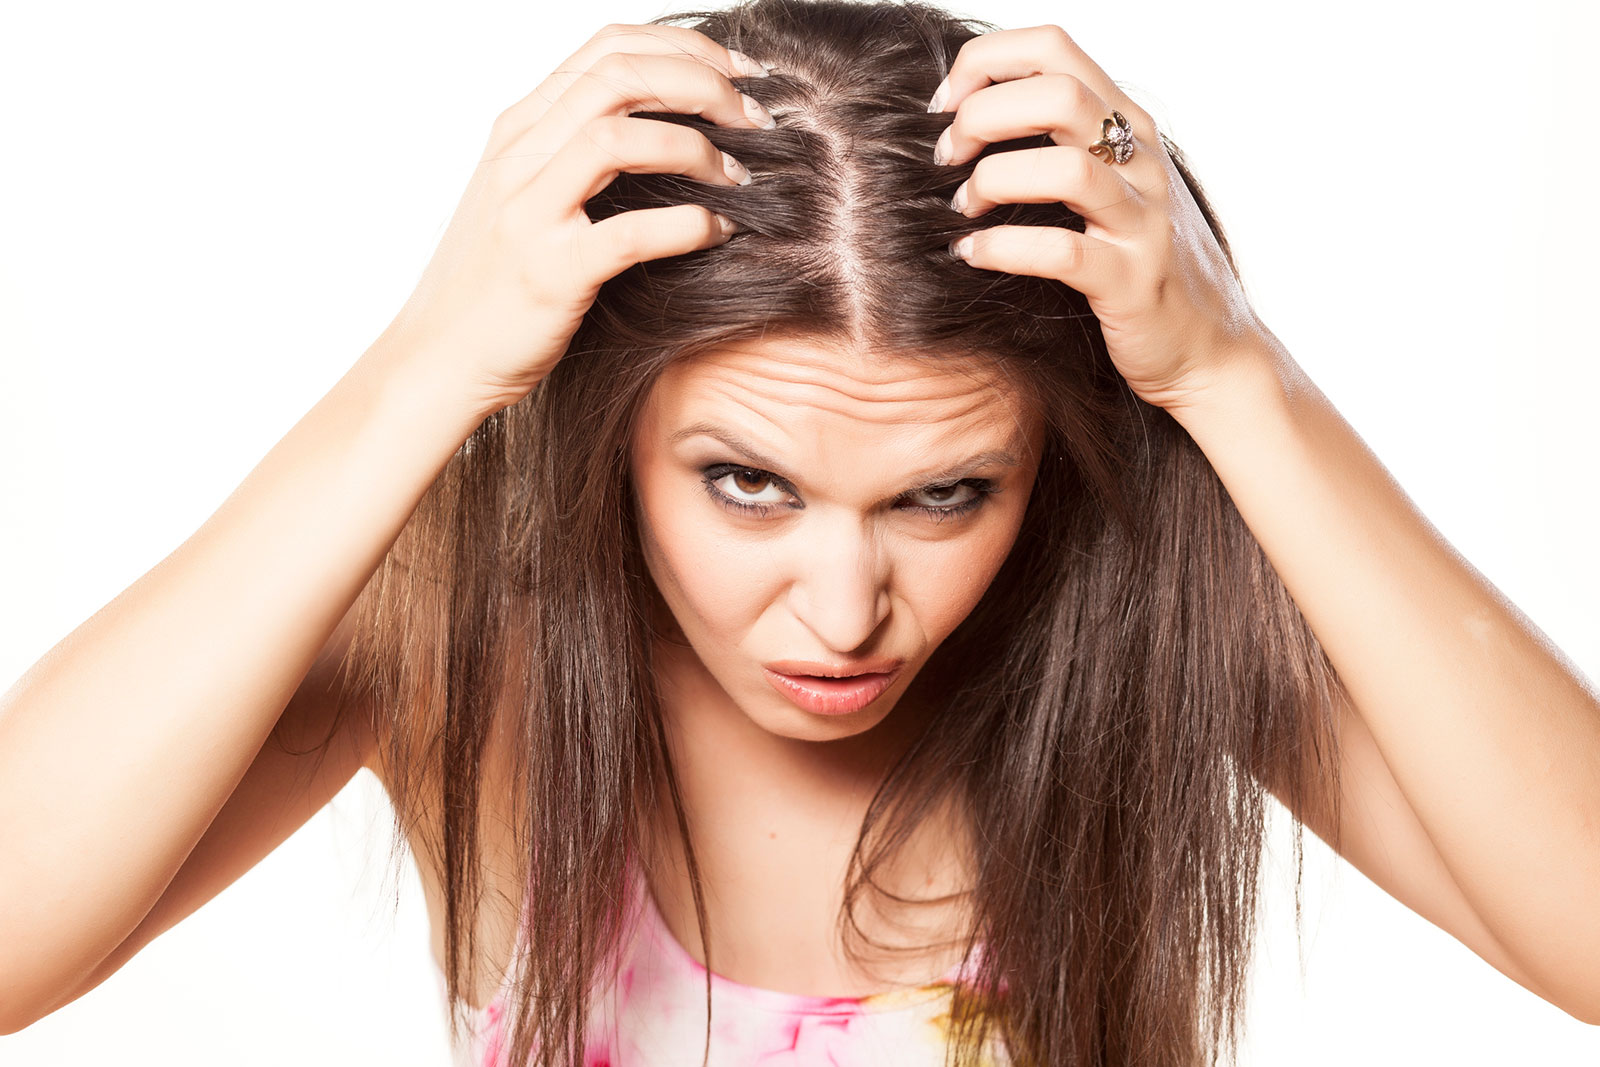 Why dandruff, how to get rid of it?